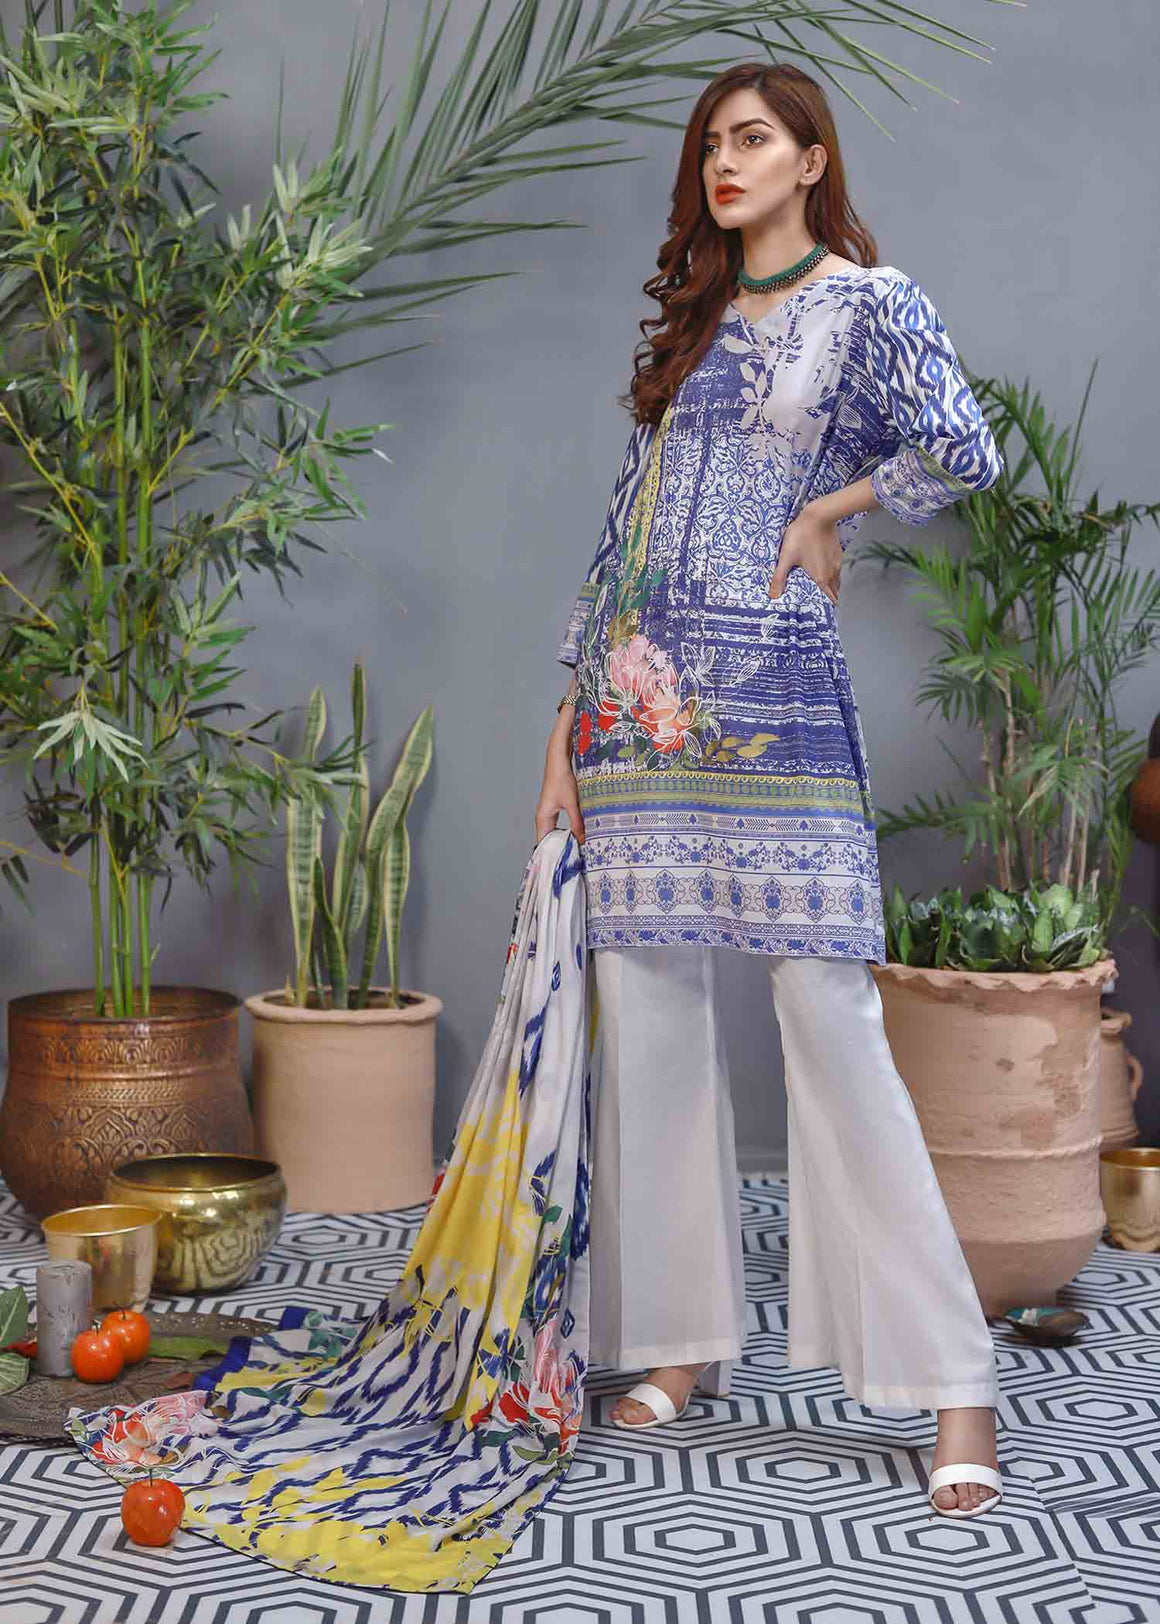 Soffio - Unstitched Lawn Collection Khwabeeda SK-033 - 2 PC